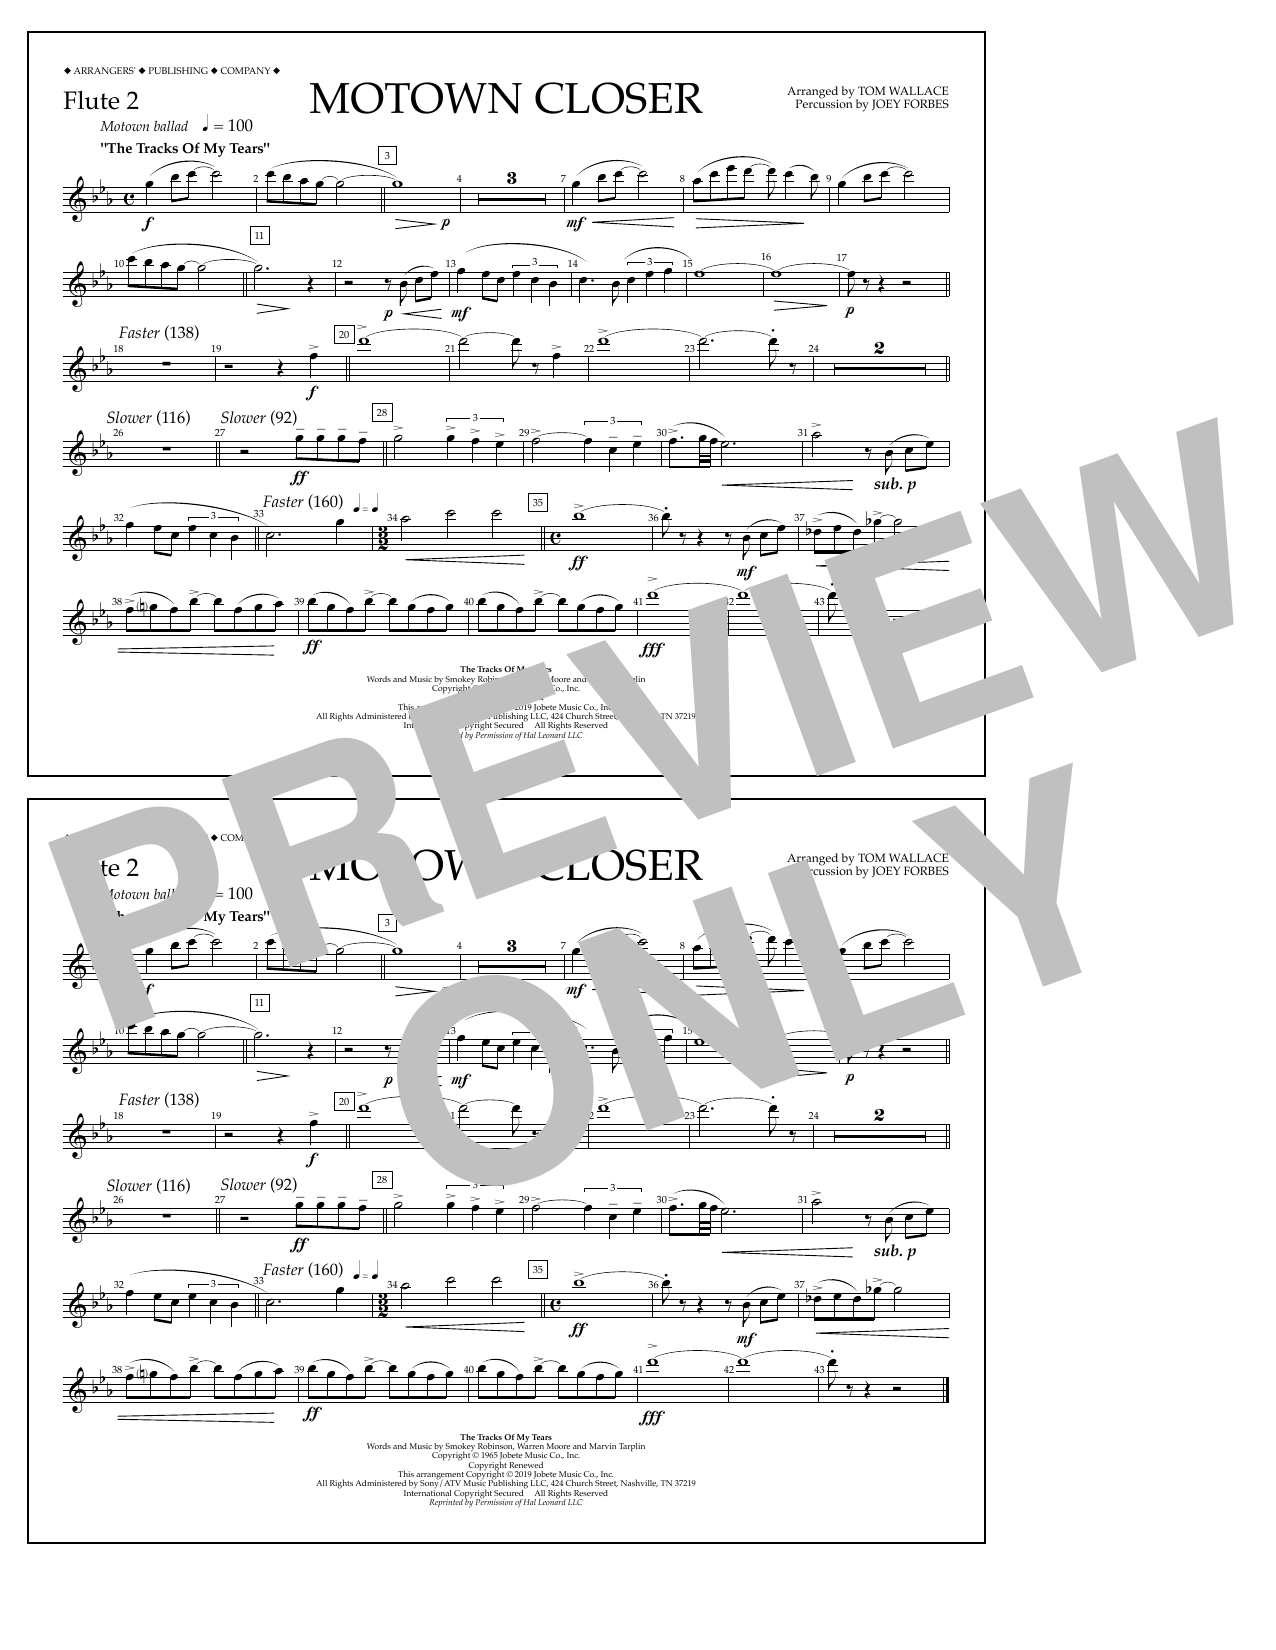 Smokey Robinson Motown Closer (arr. Tom Wallace) - Flute 2 sheet music notes and chords. Download Printable PDF.